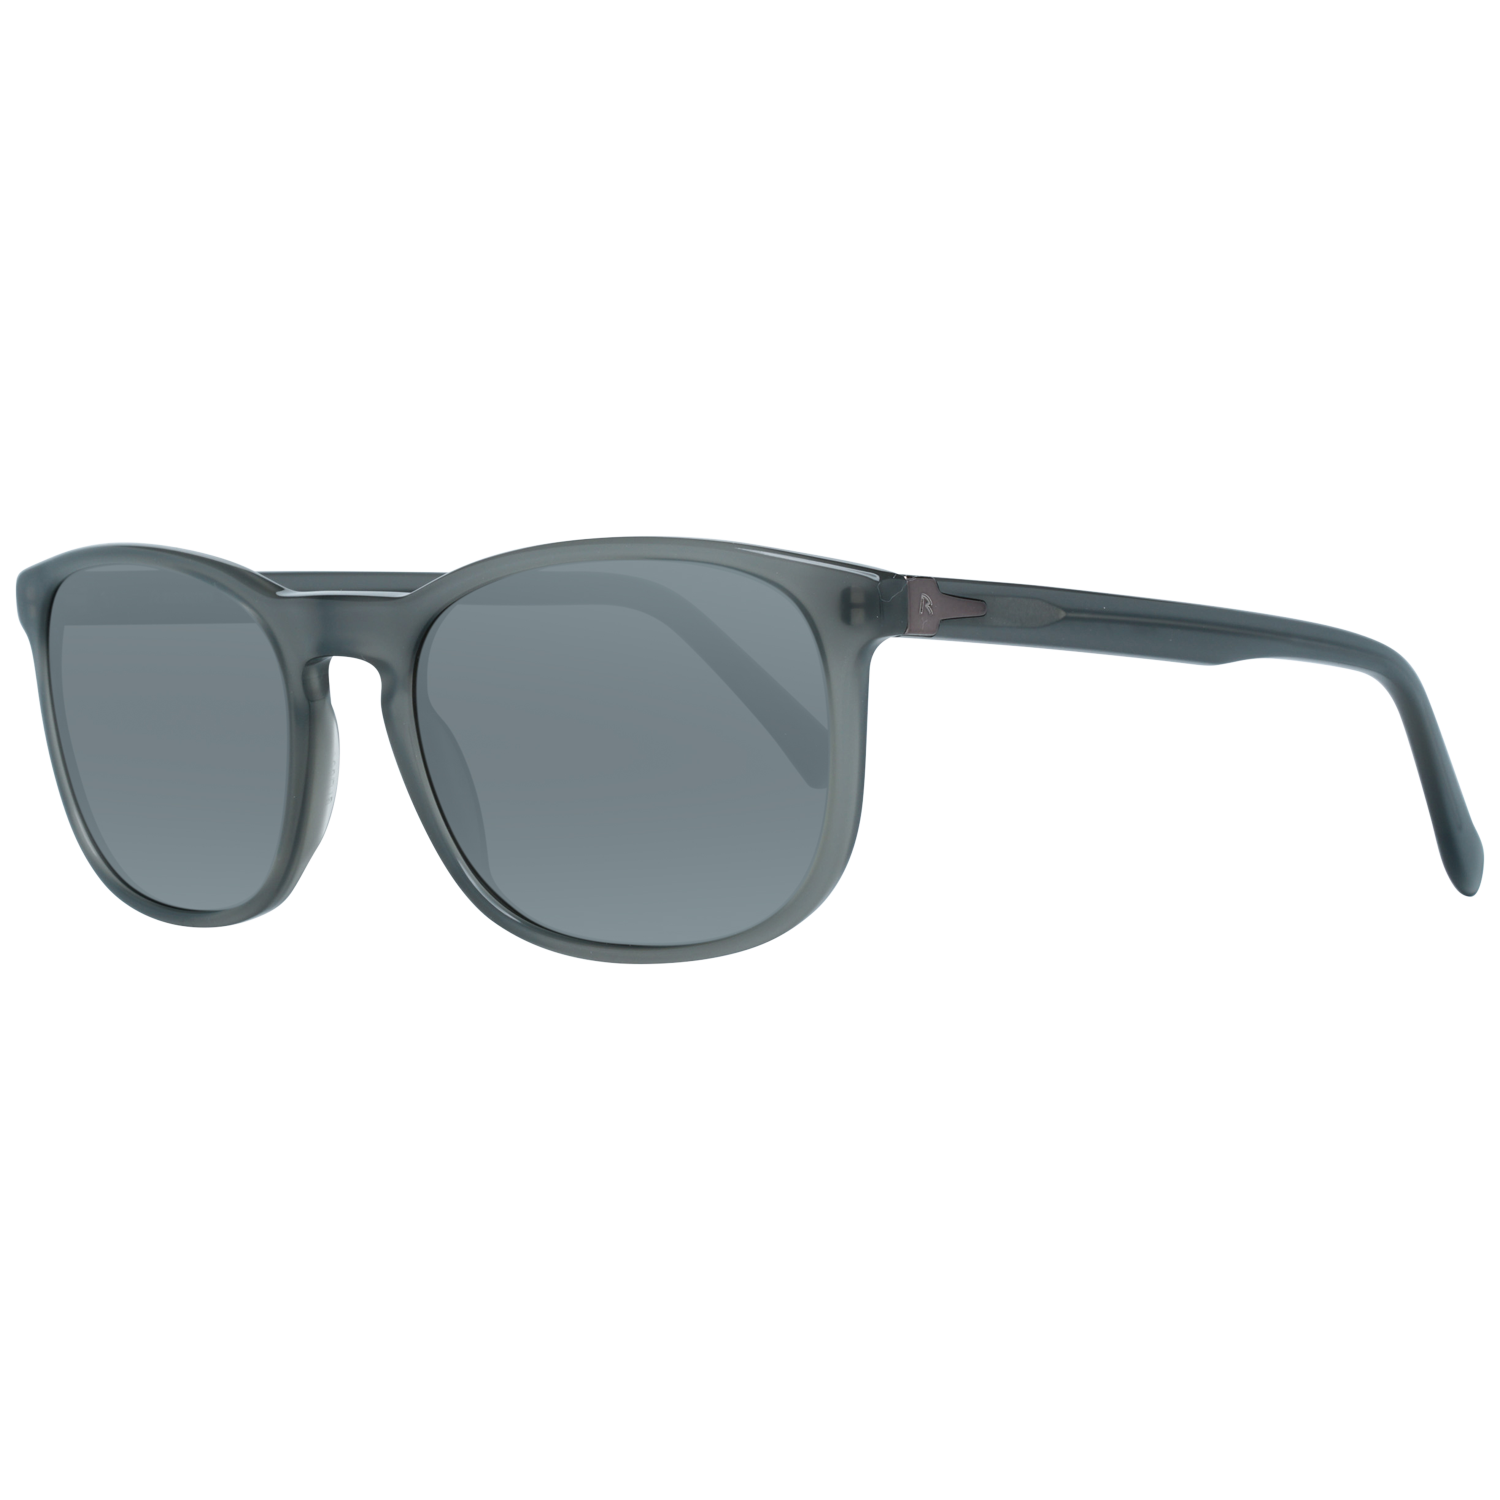 Rodenstock Sunglasses R3287 D 55 Grey